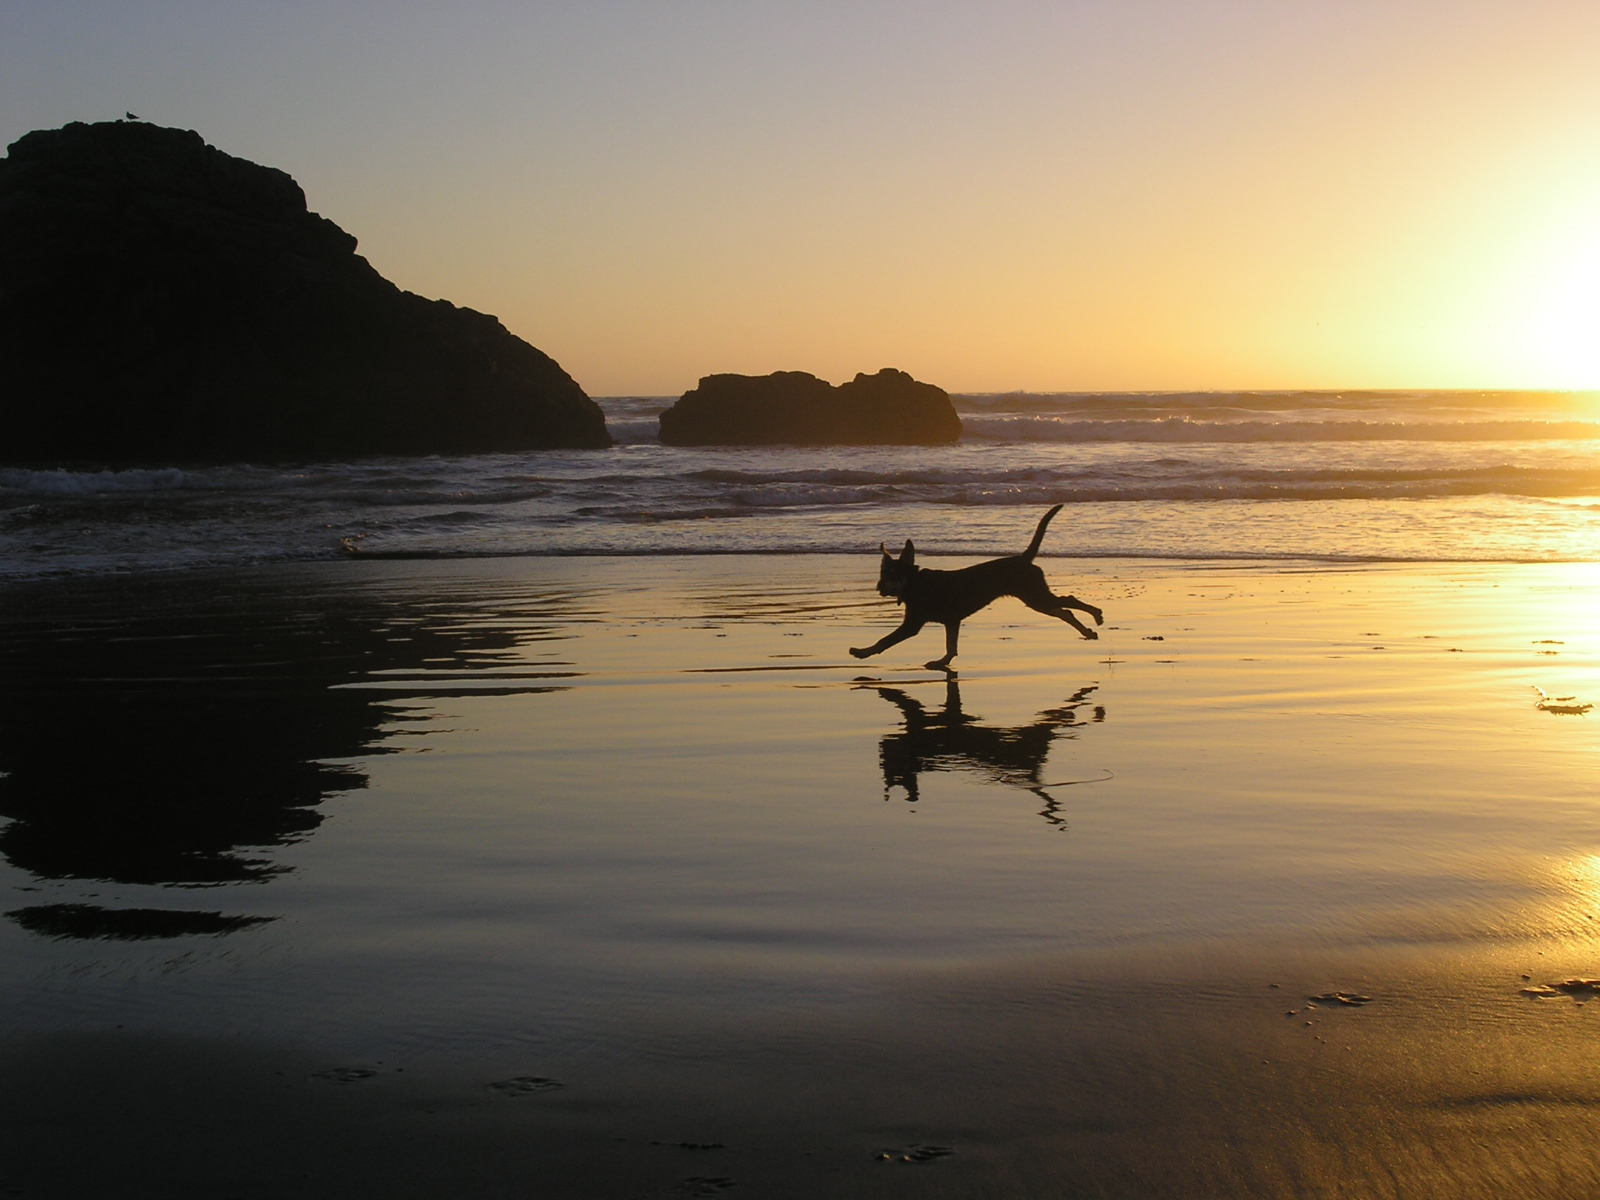 stella-running-on-the-beach-at-sunset